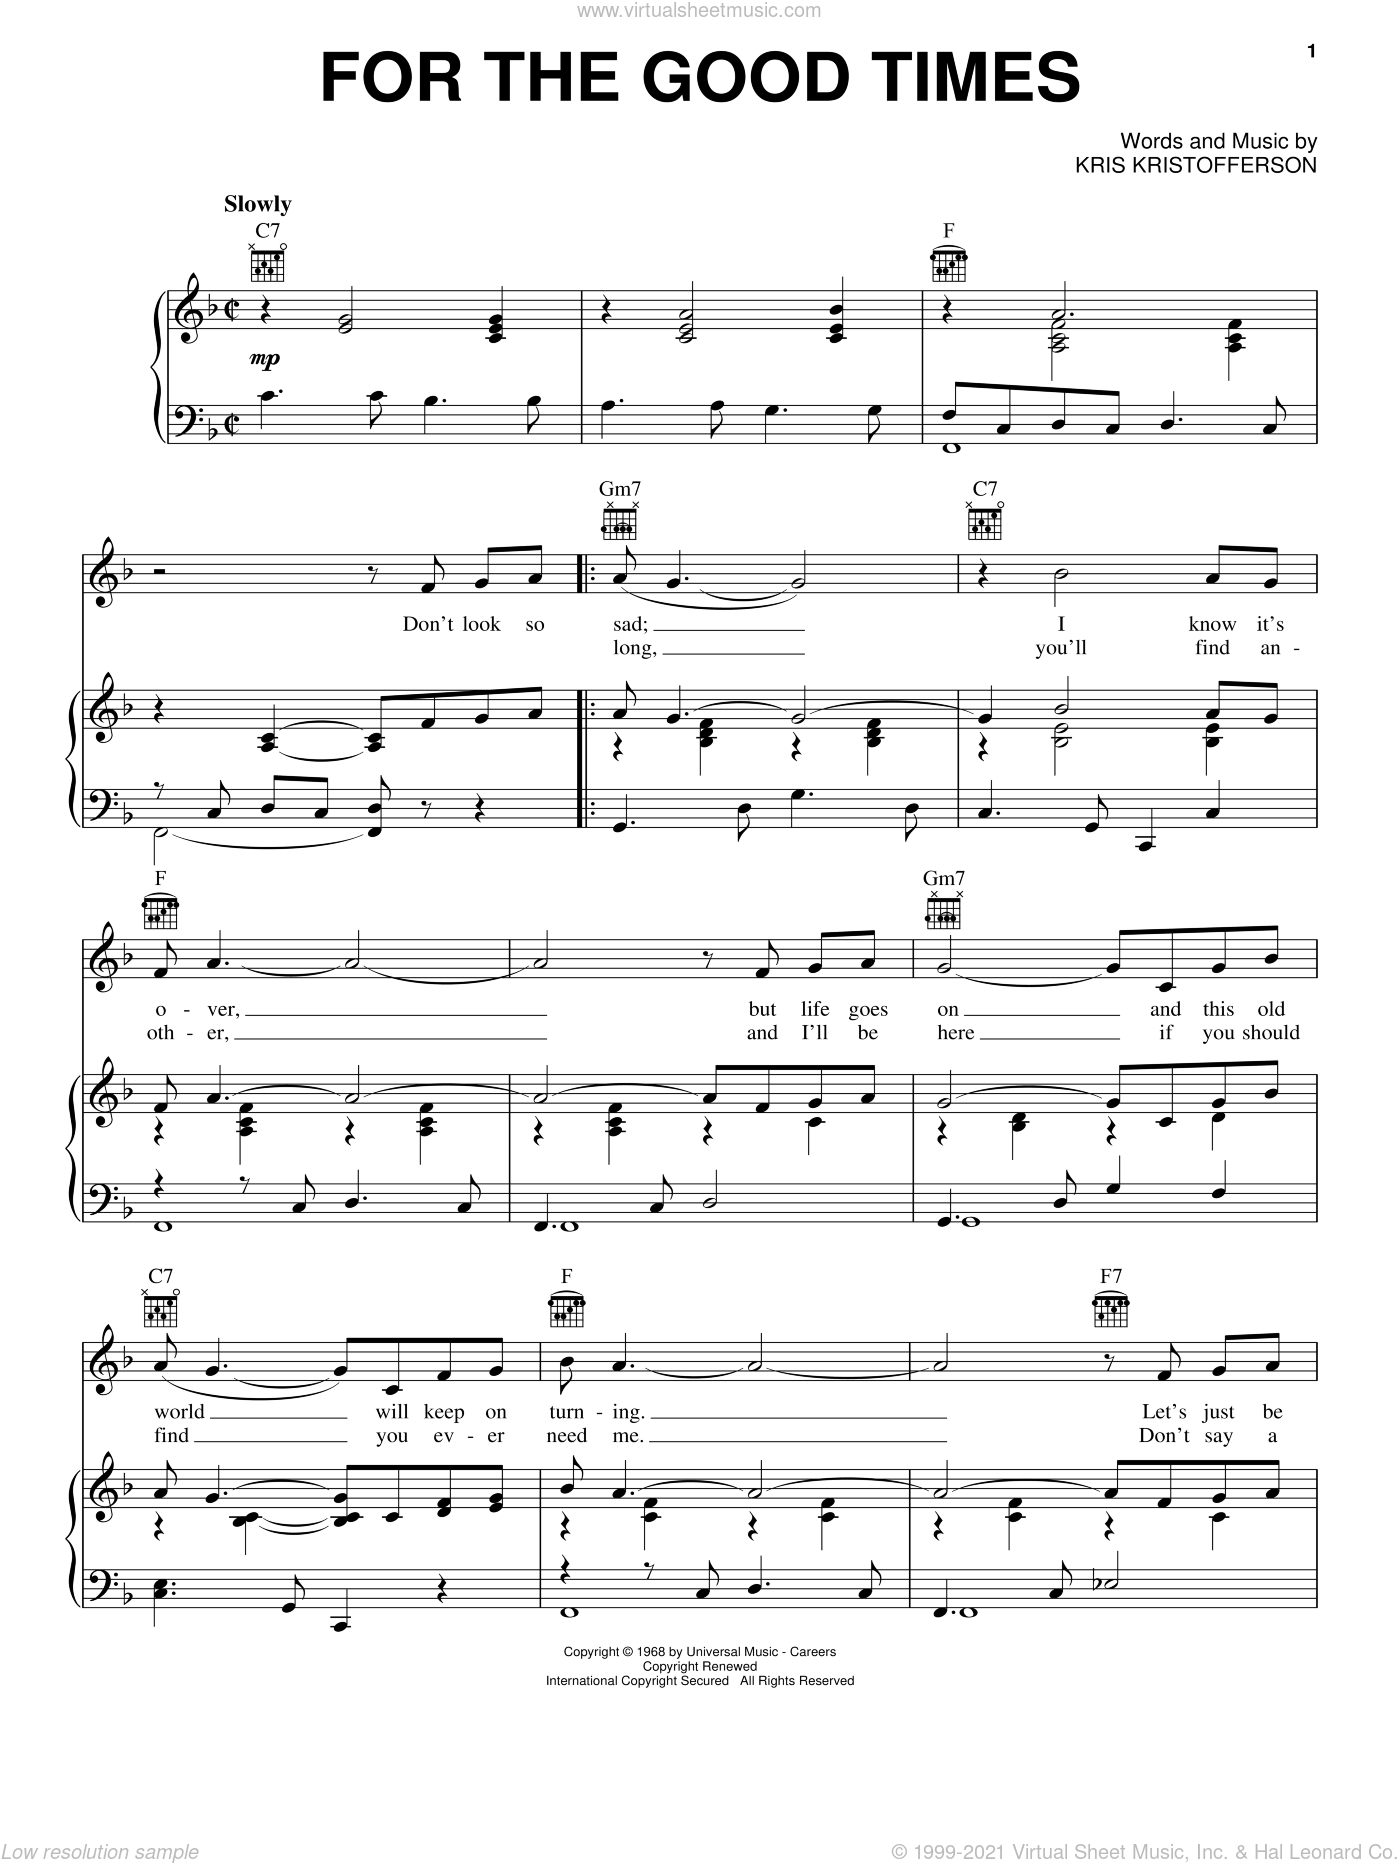 For The Good Times sheet music for voice, piano or guitar by Ray Price, Elvis Presley and Kris Kristofferson, intermediate skill level